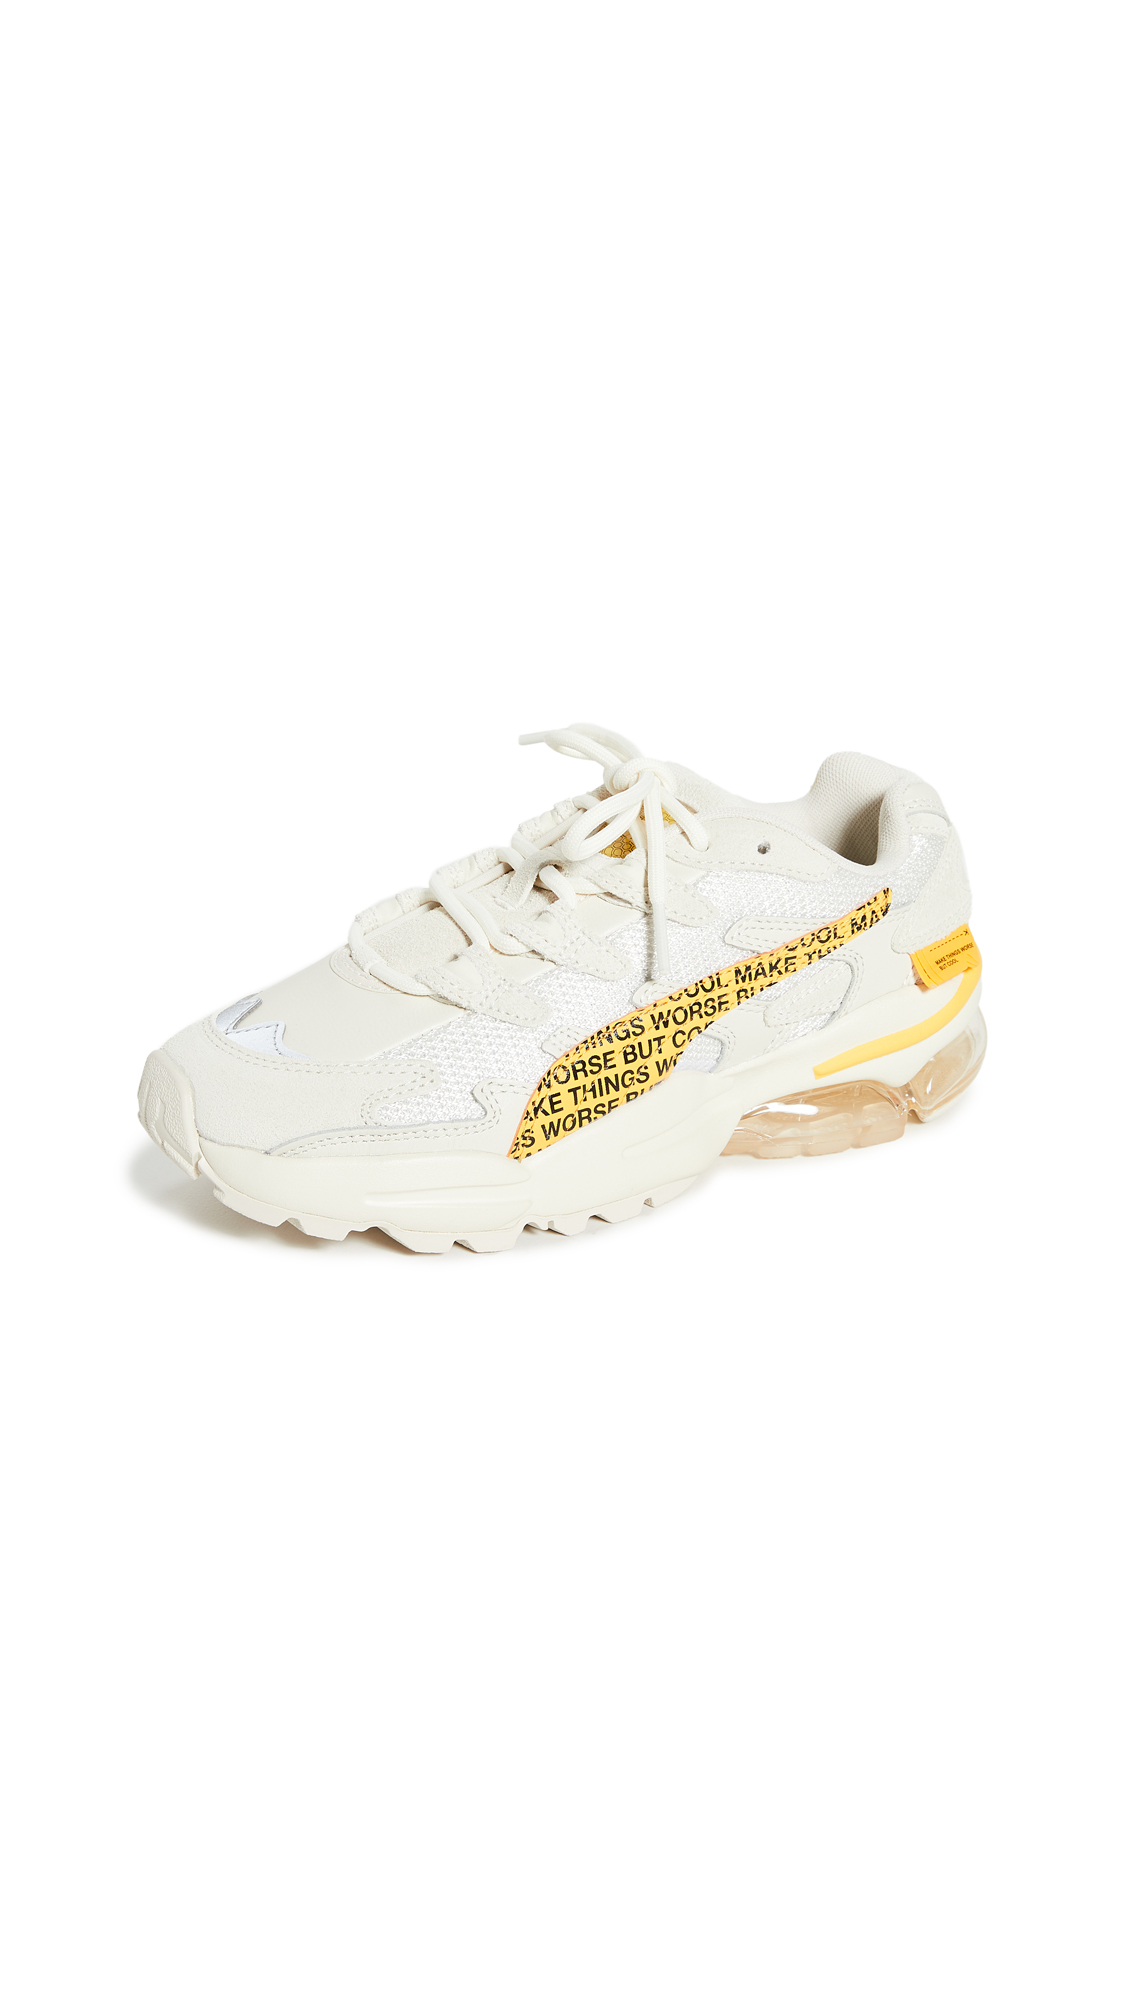 Buy PUMA x RANDOMEVENT CELL Alien Sneakers online, shop PUMA